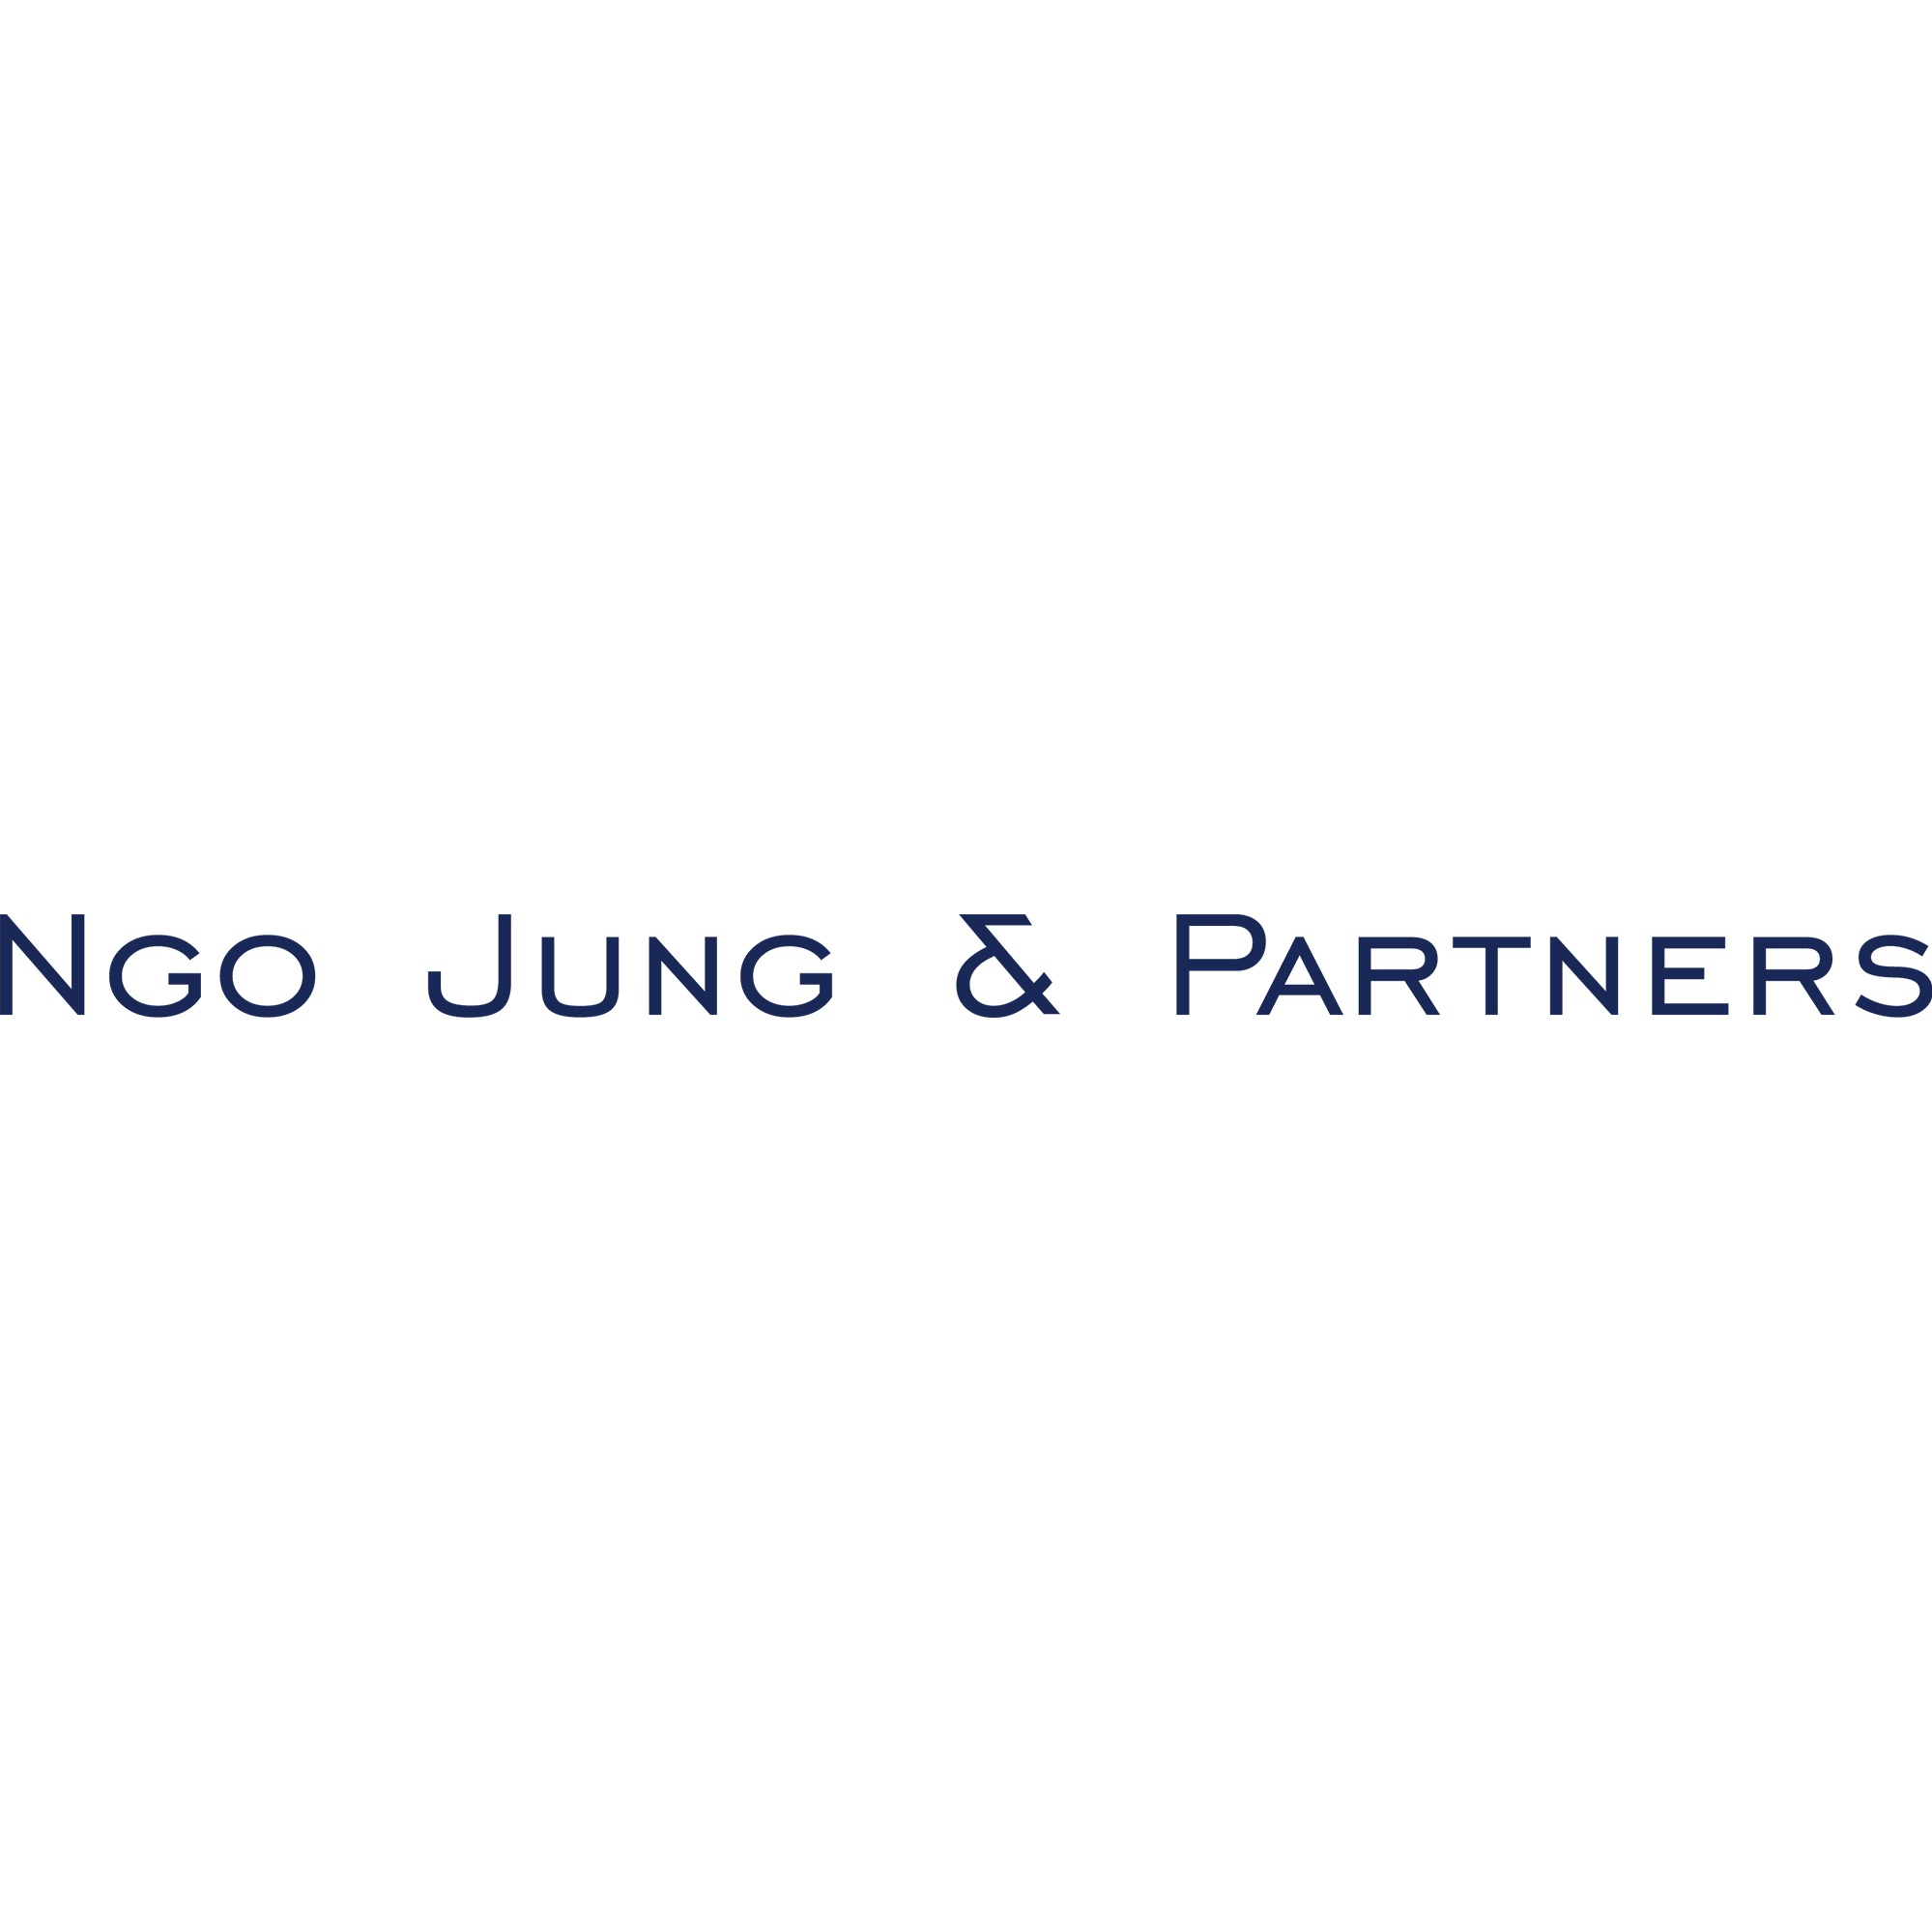 the Ngo Jung & Partners logo.